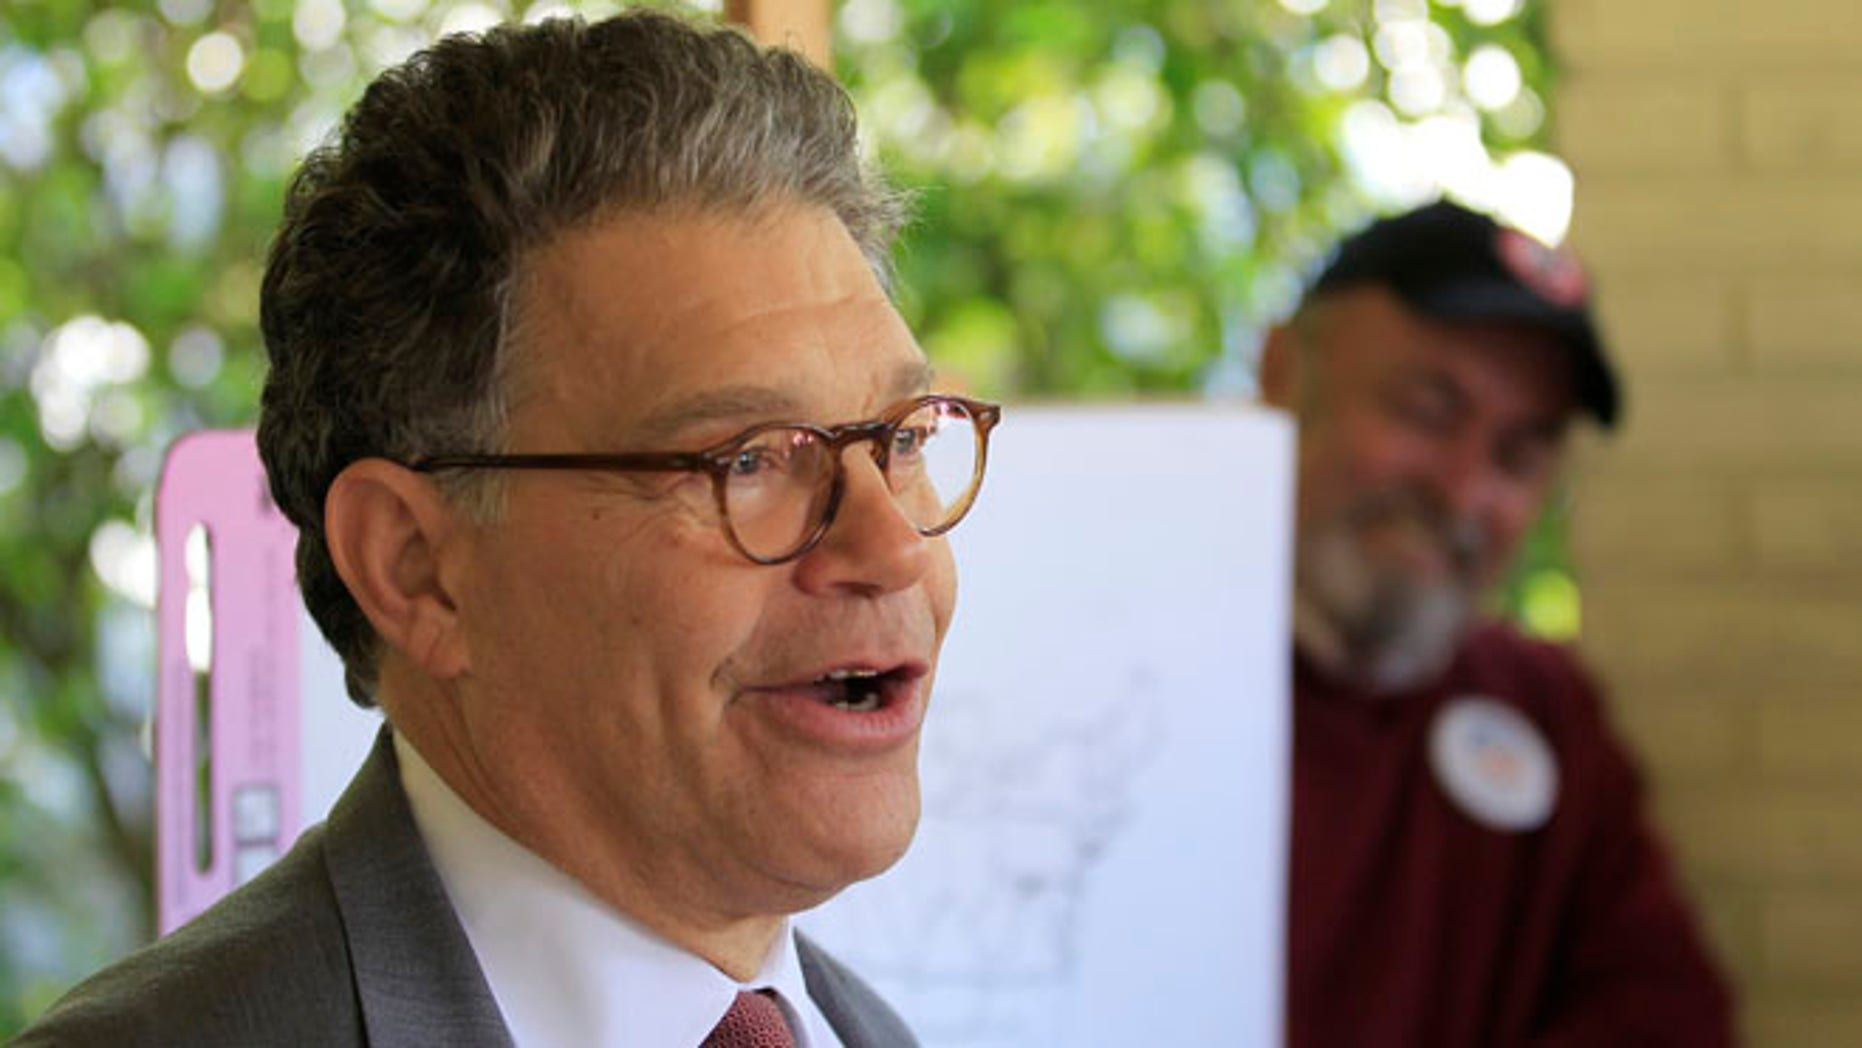 U.S. Sen. Al Franken (D-MN) in Wilton Manors, Florida October 31, 2012.